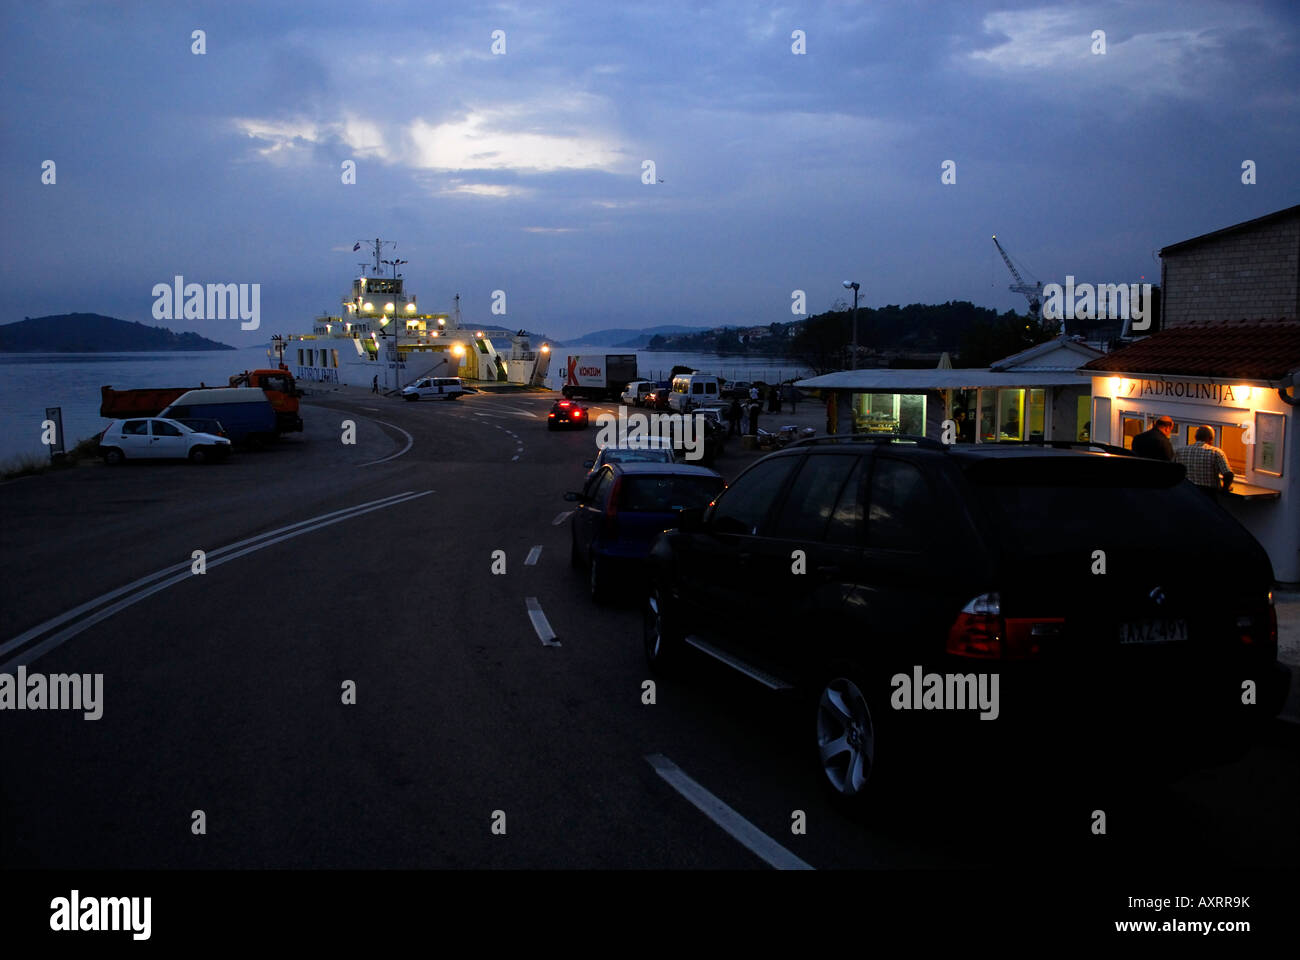 Cars and trucks lined up waiting to board car-ferry at pre-dawn. Dubrovnik, Croatia - Stock Image